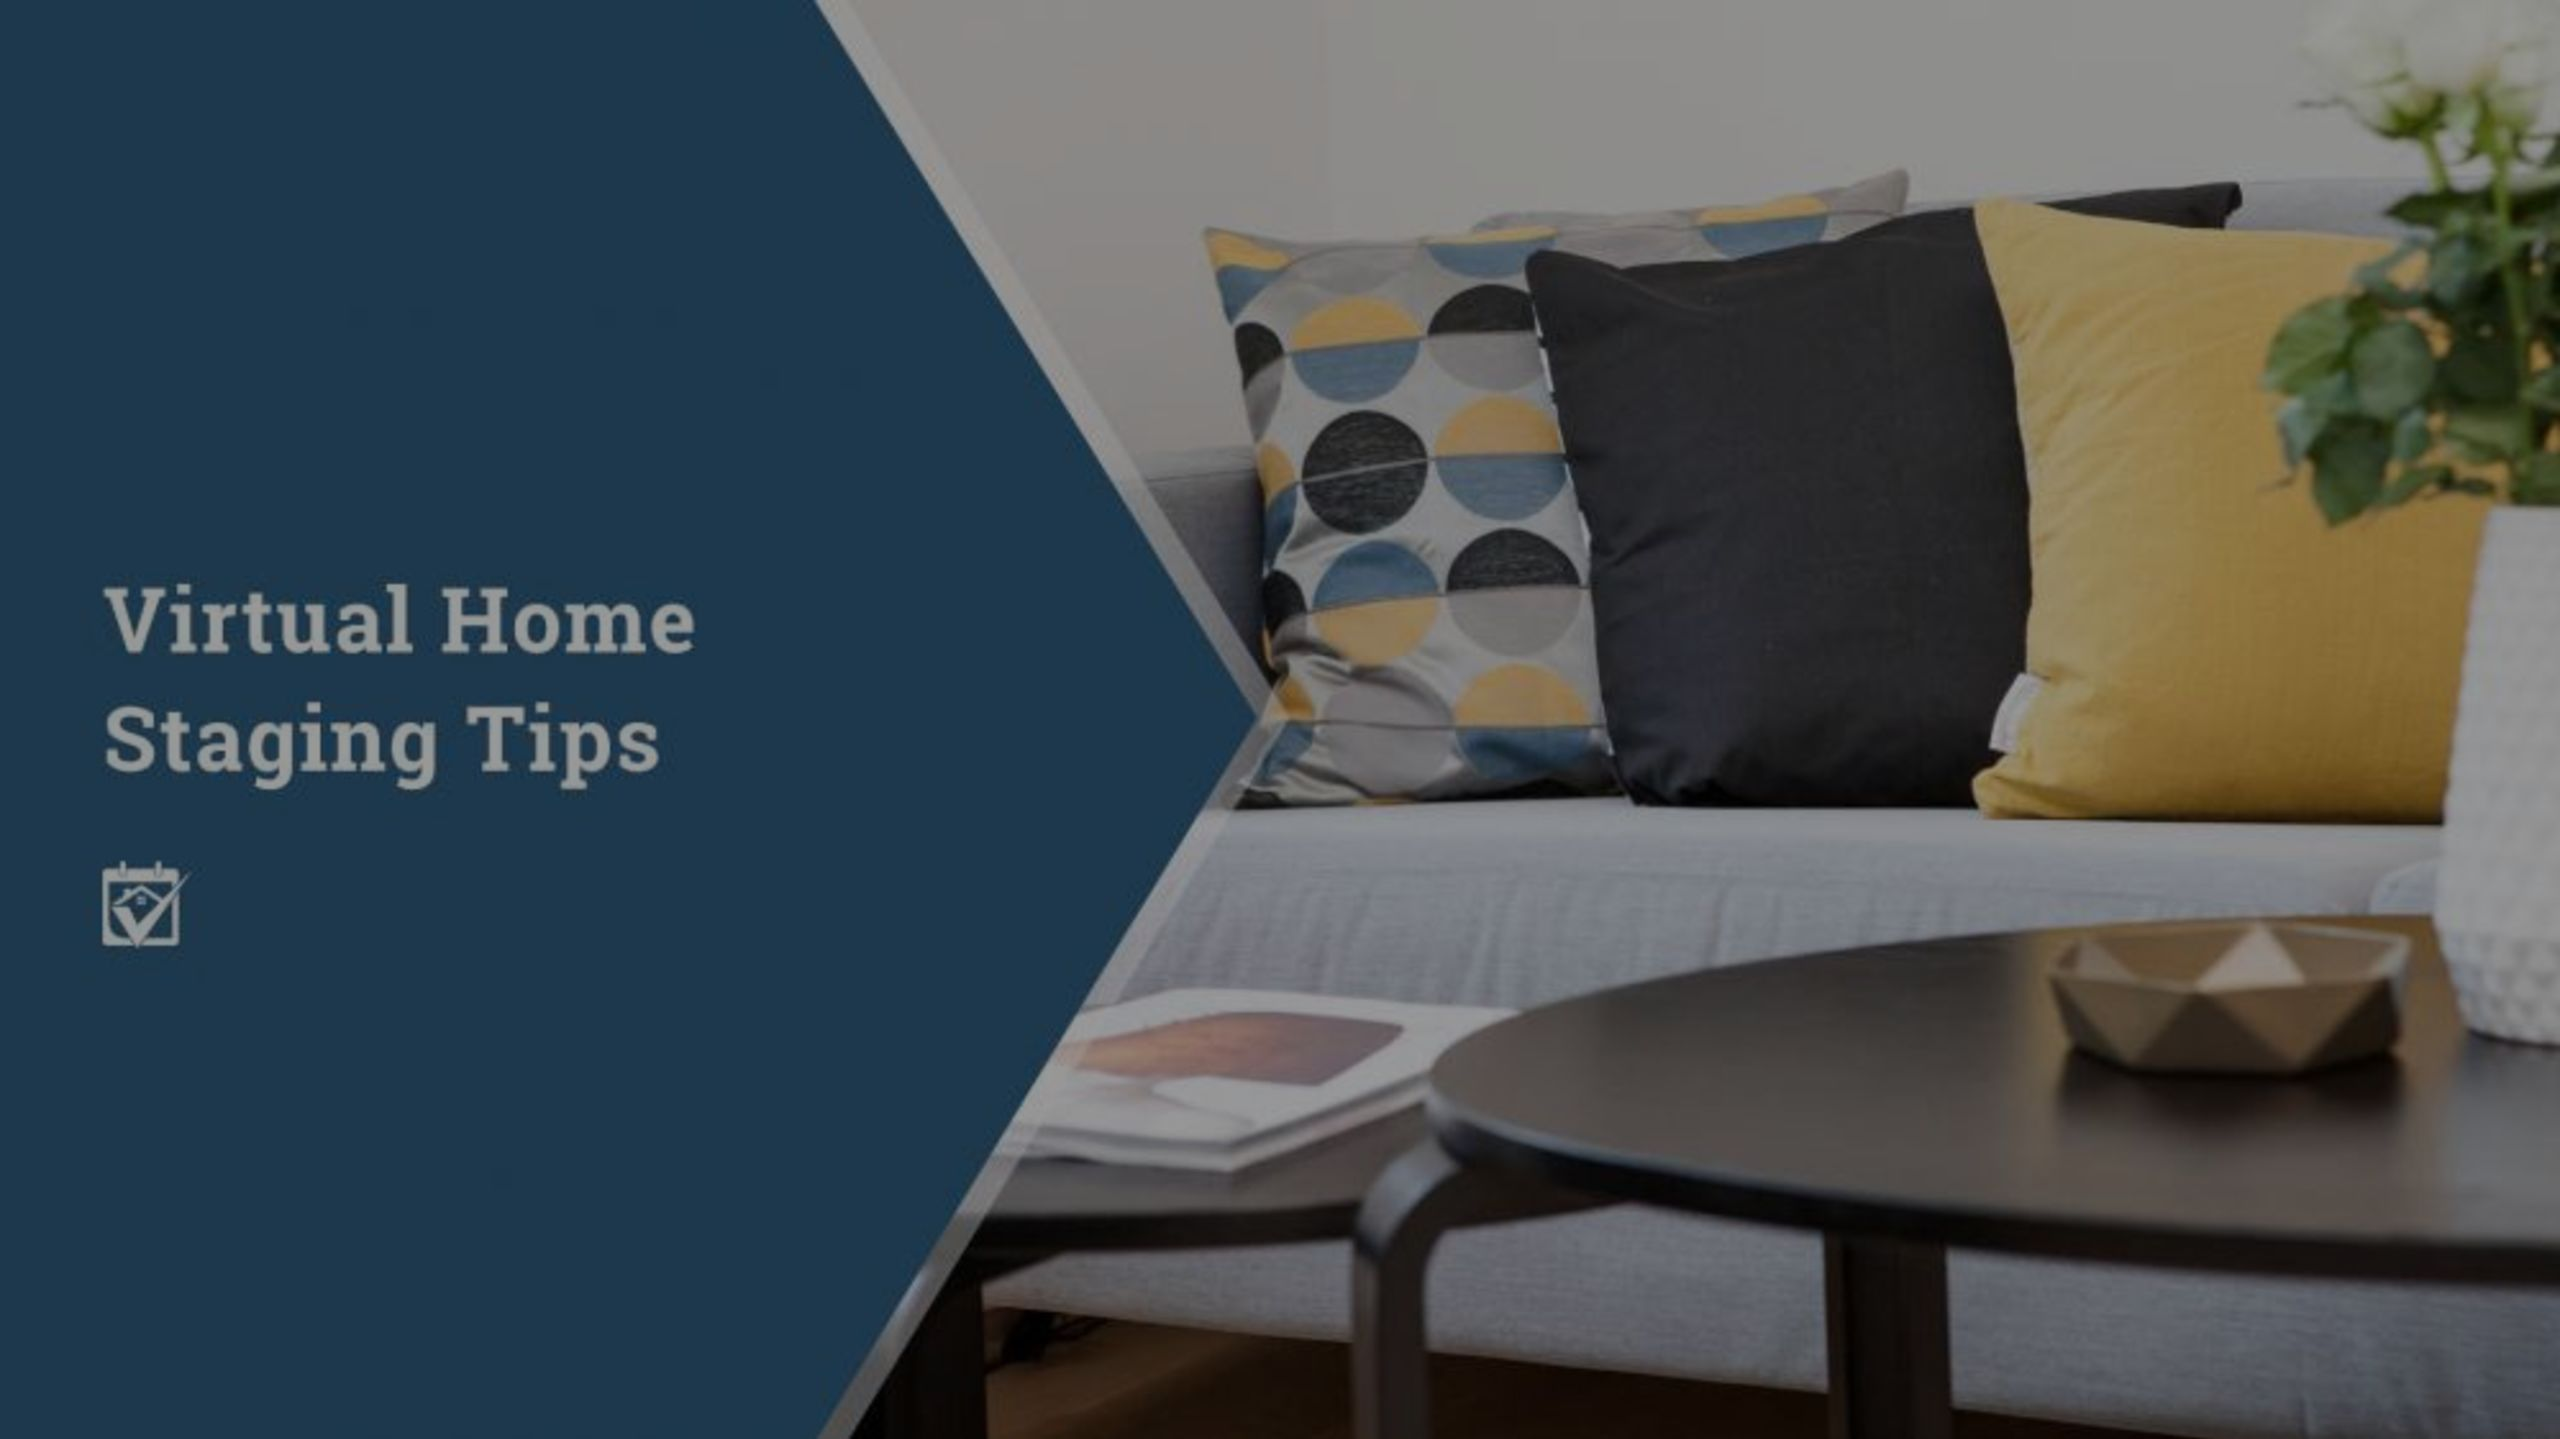 Virtual Home Staging Tips